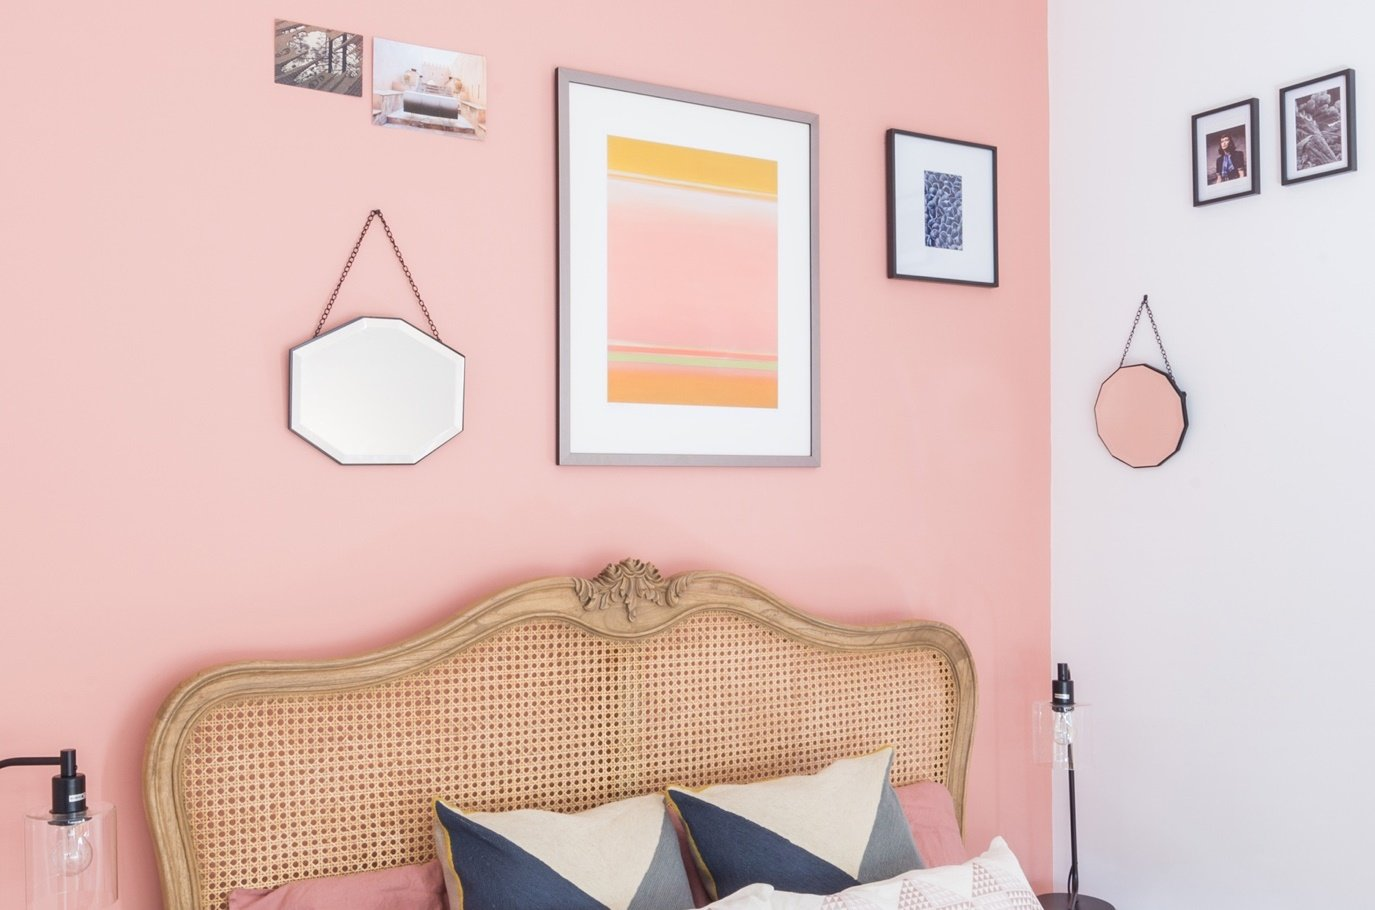 residential painting and decorating services for bright bedroom with walls painted pink and white, designer furniture in Shepherds Bush, London